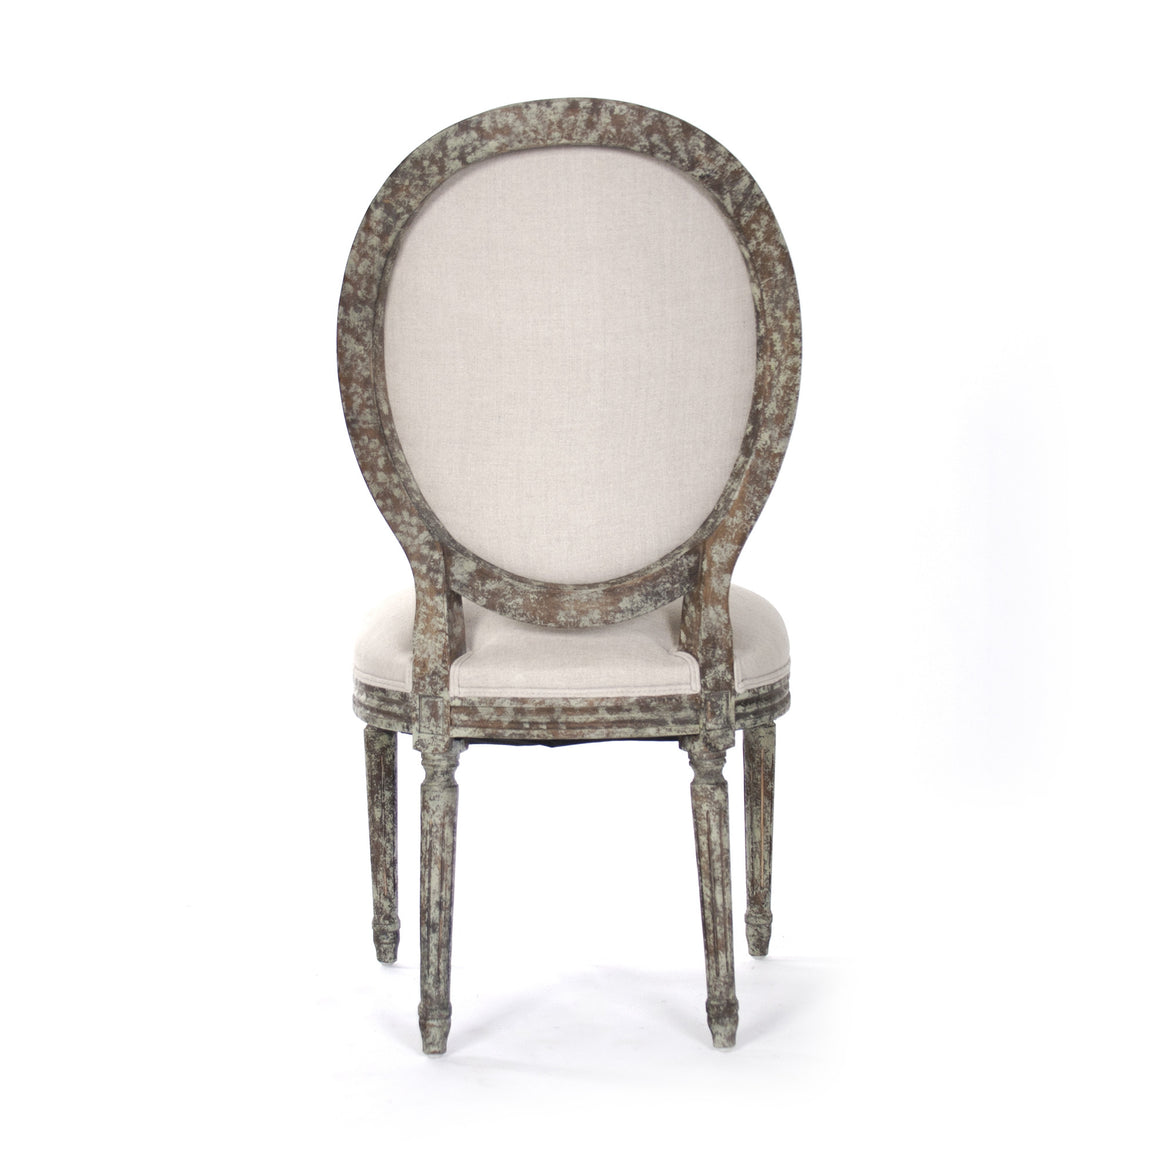 Dining Chair - Medallion Side Chair, Distressed Olive Green